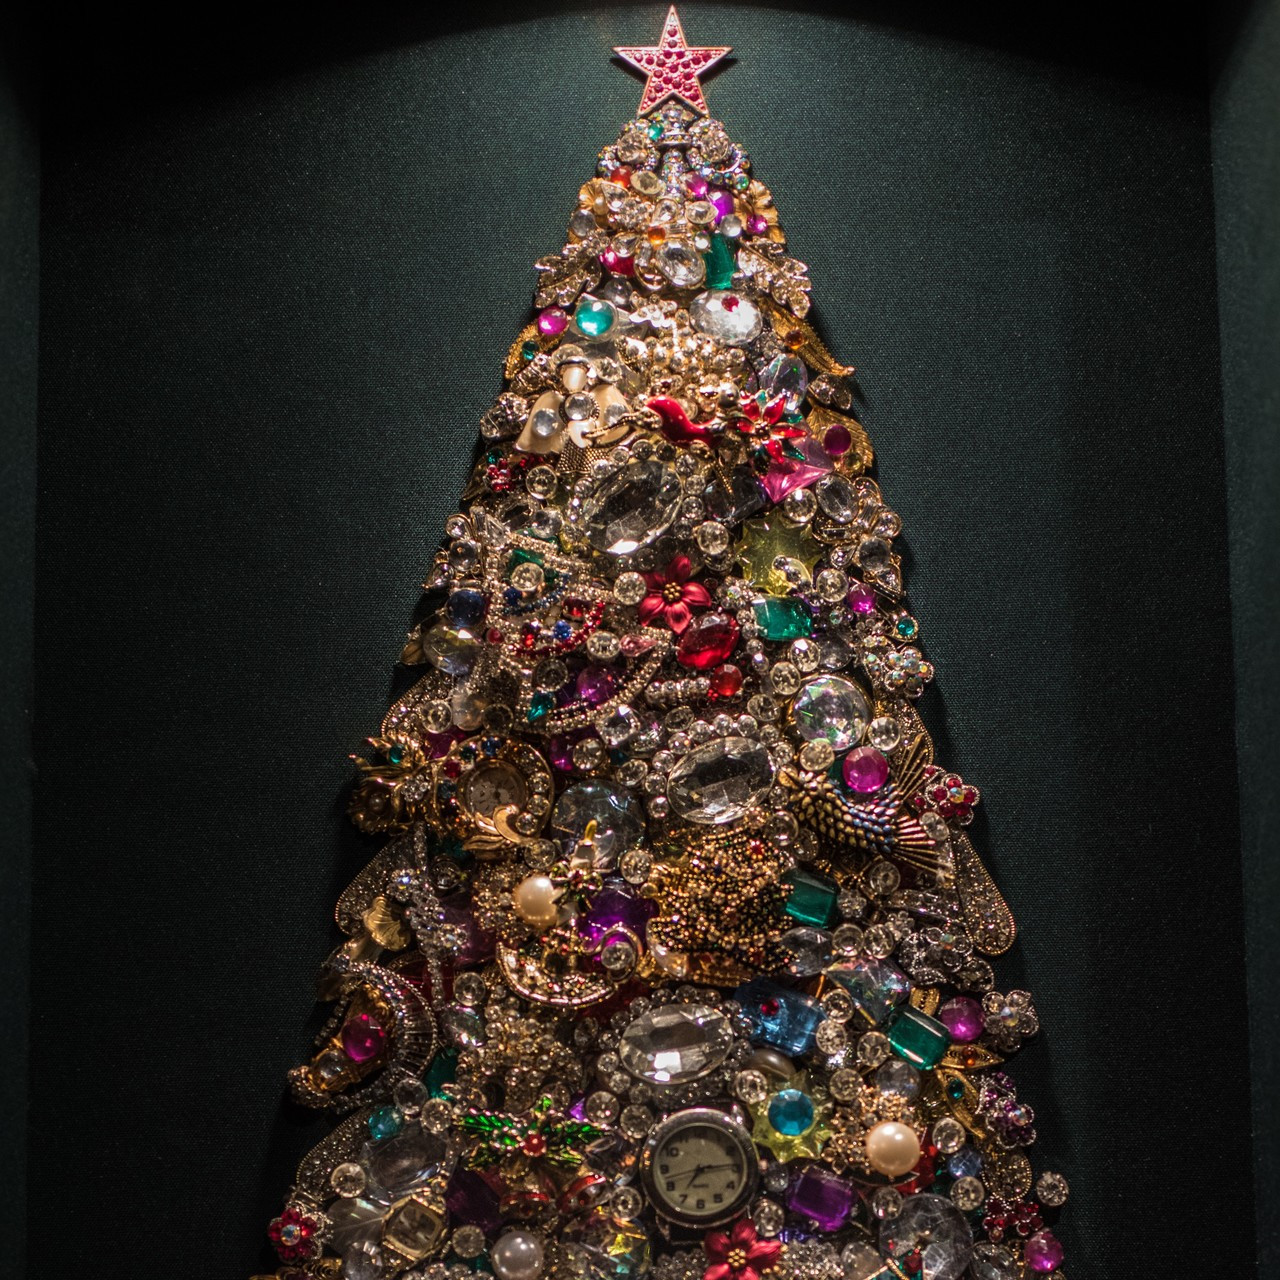 December 1st Jeweled Christmas Tree Tour and Workshop - 9:00 am ...